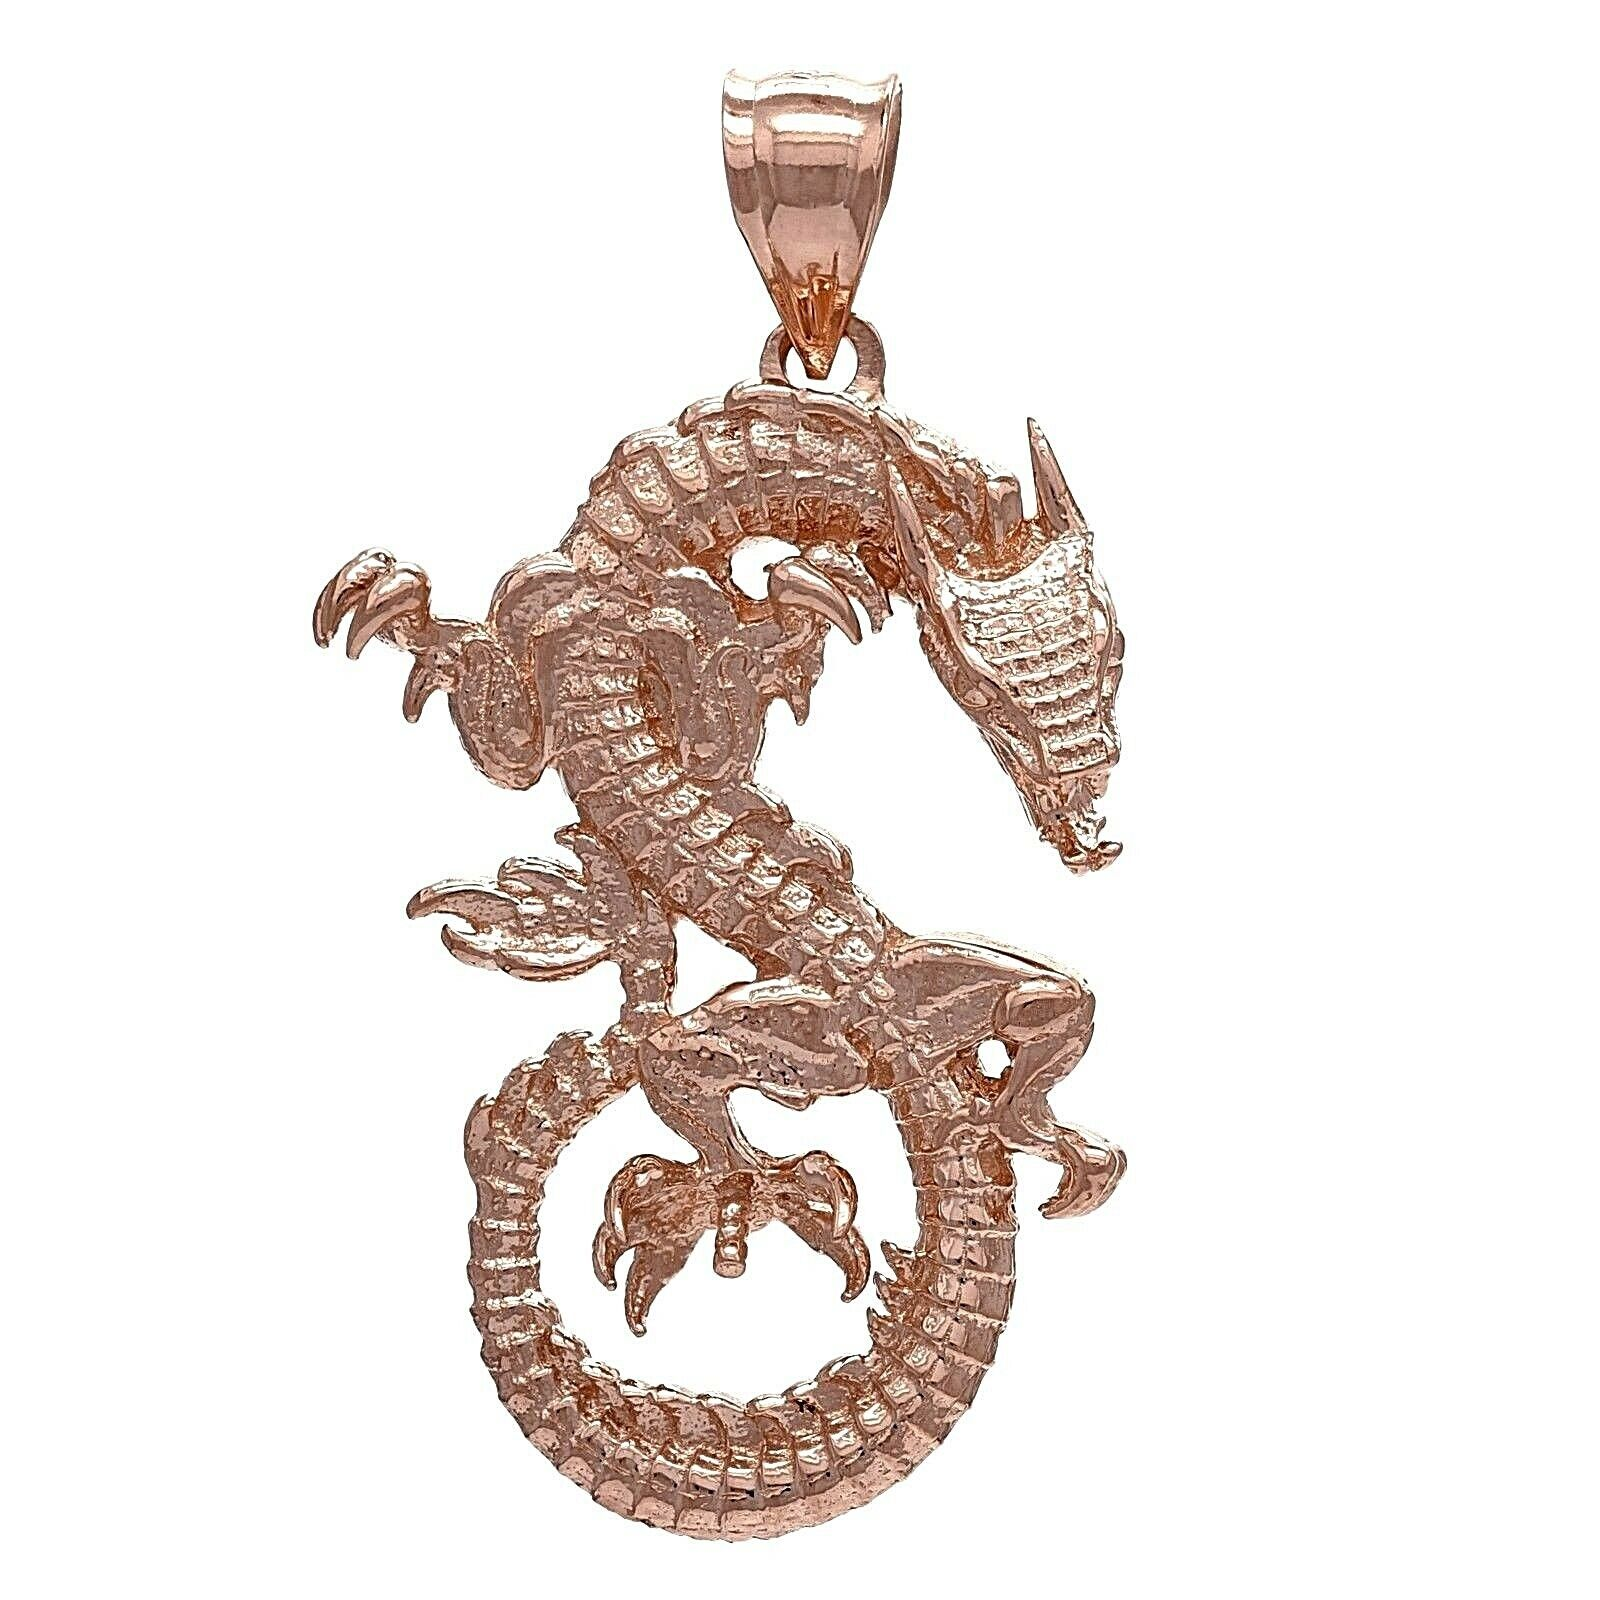 10k Yellow White or Rose Gold Solid Detailed 3D Good Luck Dragon Pendant